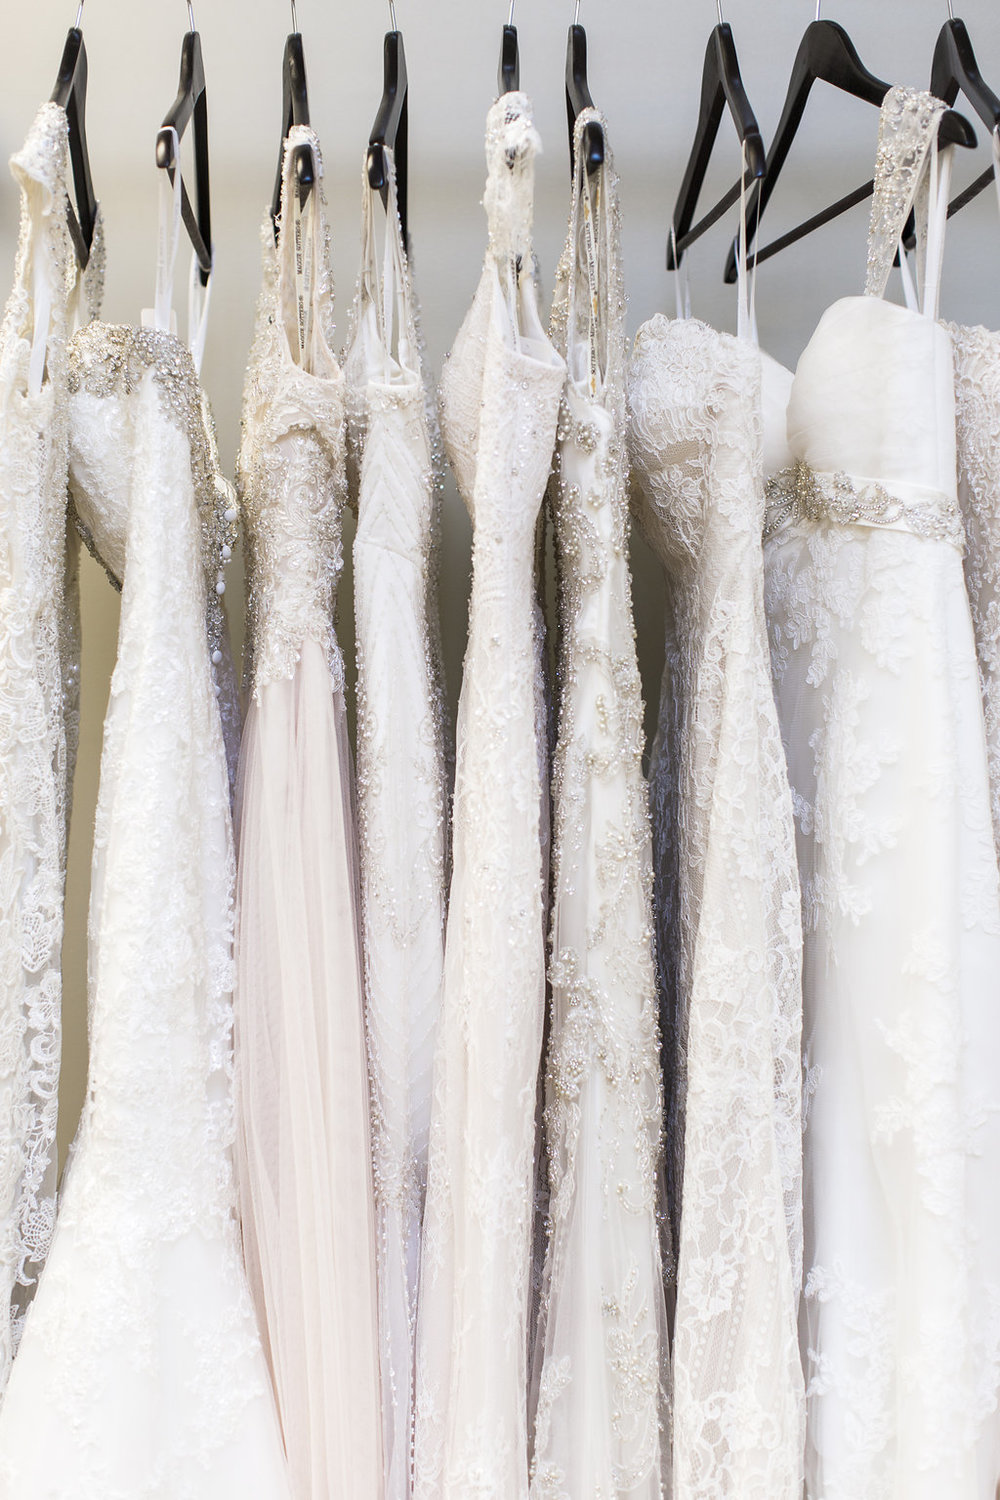 Laurie_Brotherton_Charme_Bridal_and_Prom_Boutique_009.jpg